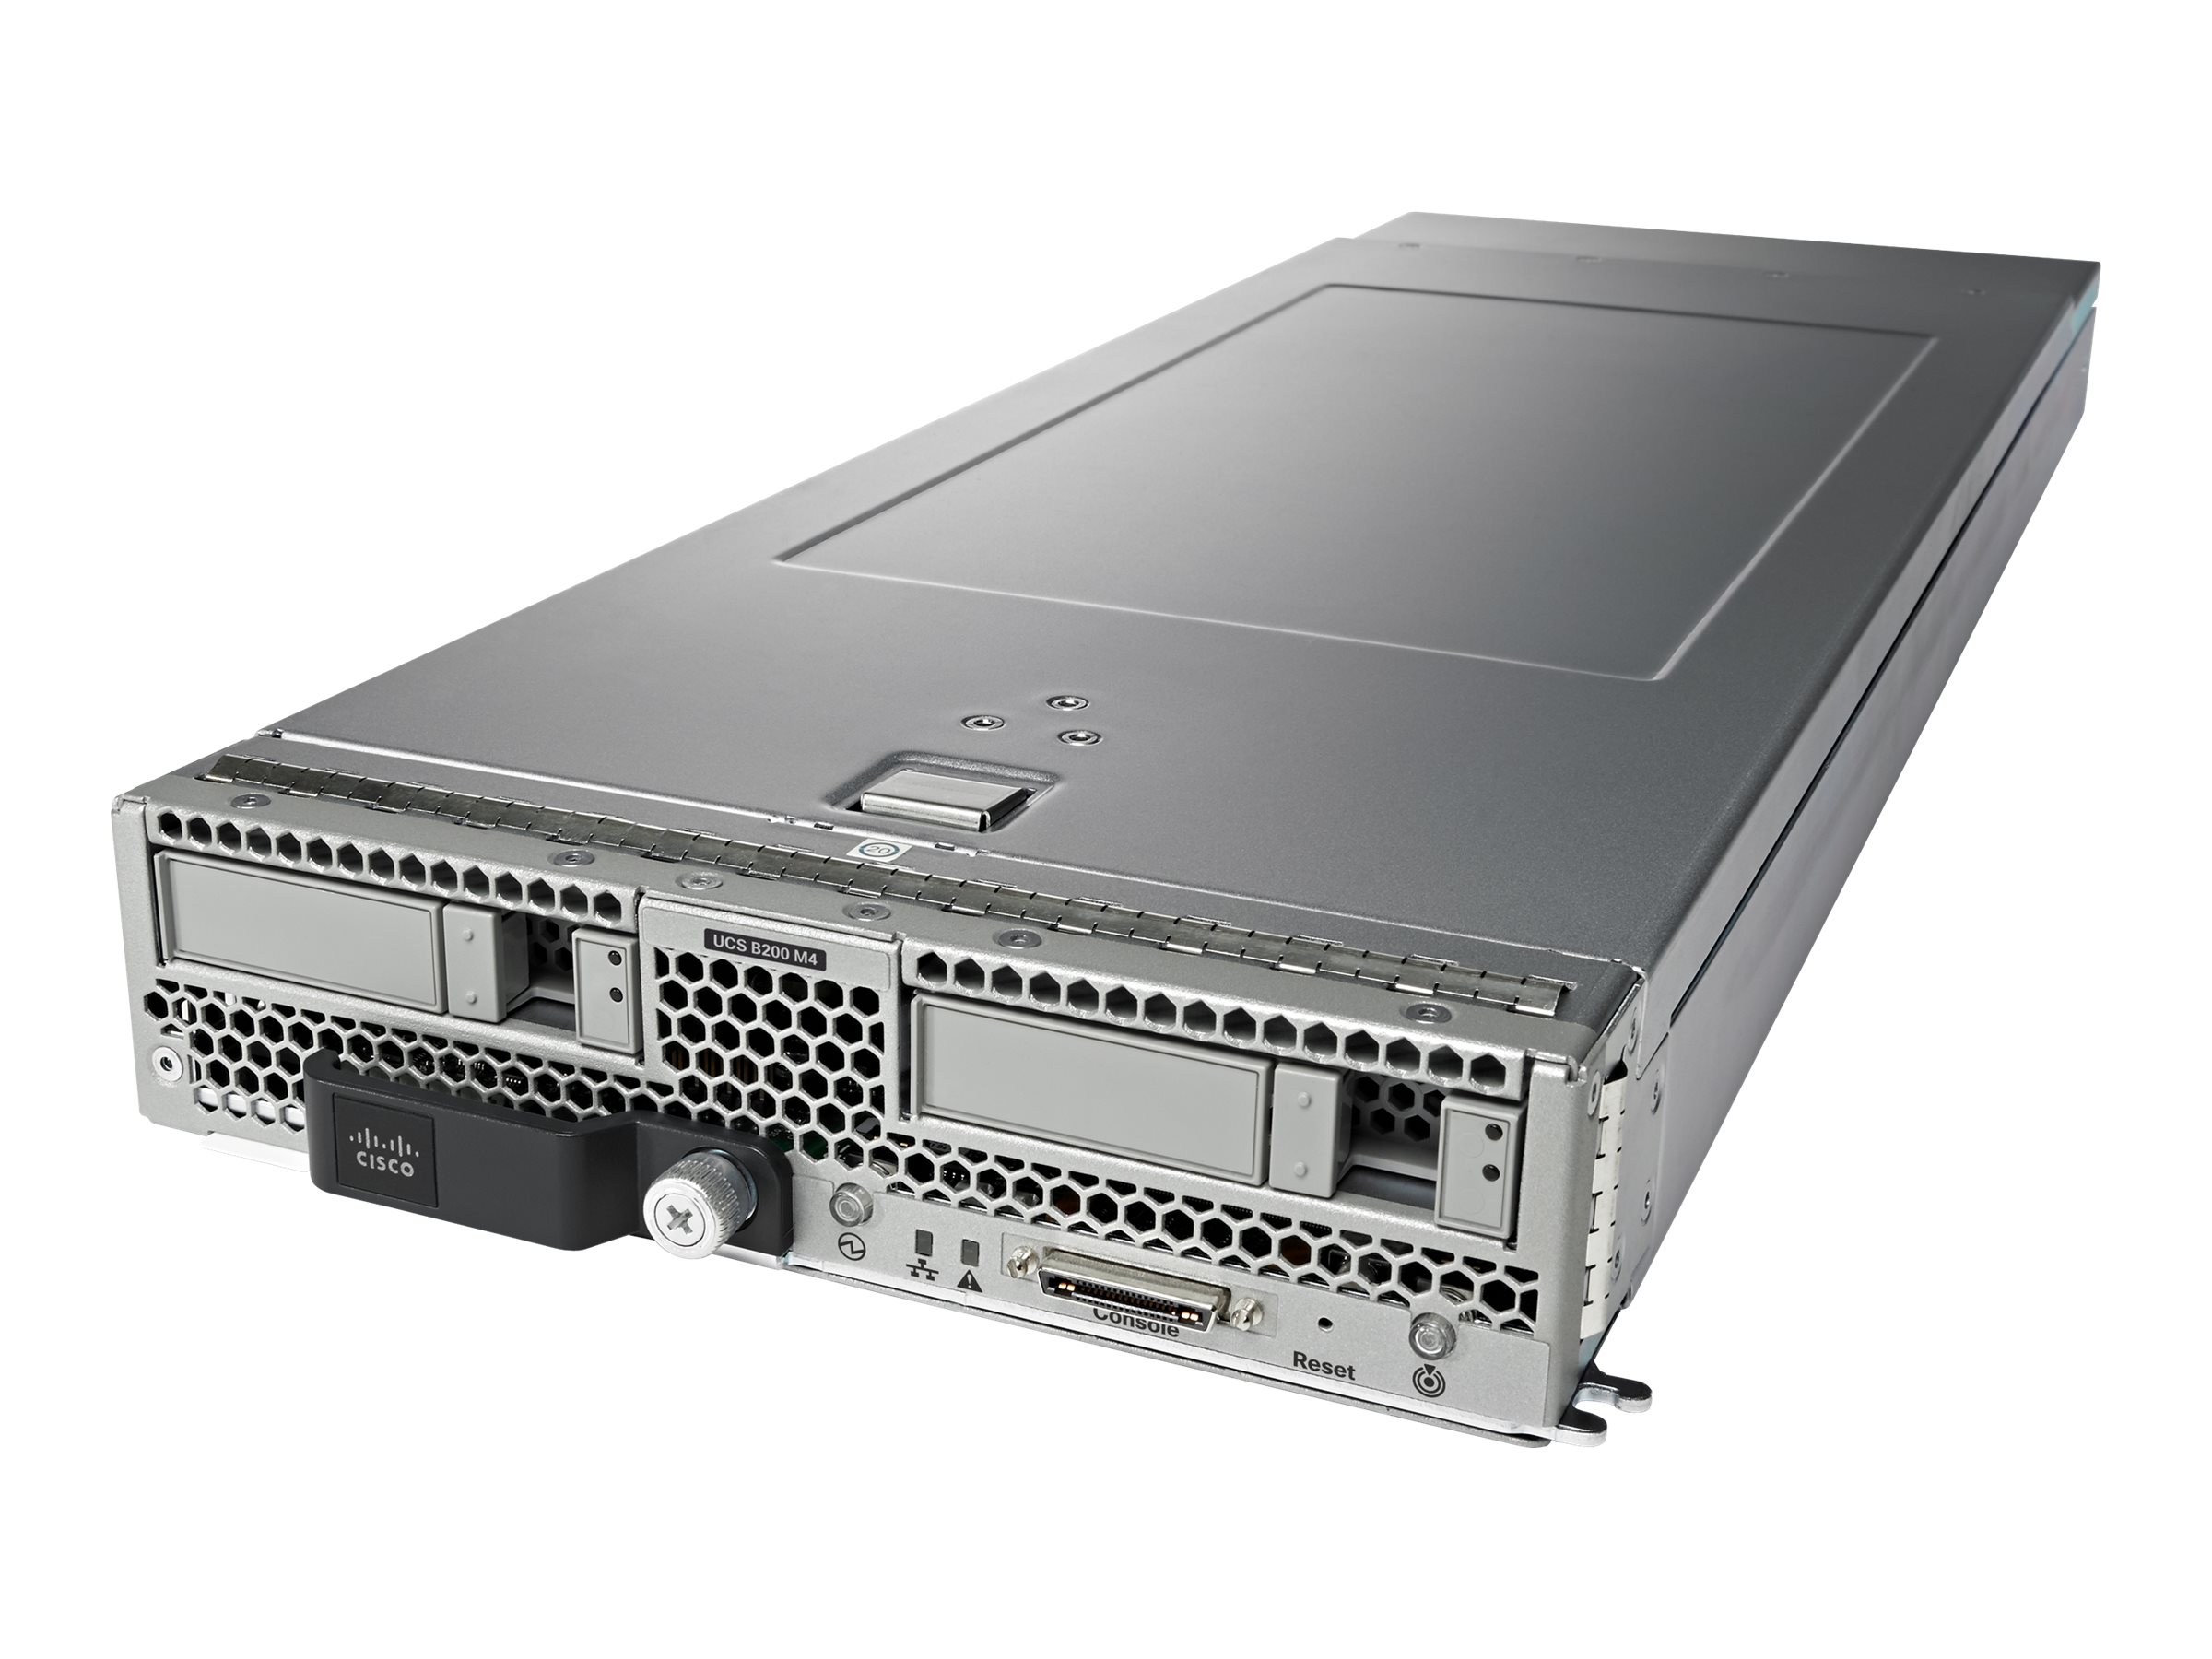 Cisco Not Sold Standalone B200 M4 Adv4 (2x)Xeon E5-2660 v4 256GB VIC1340